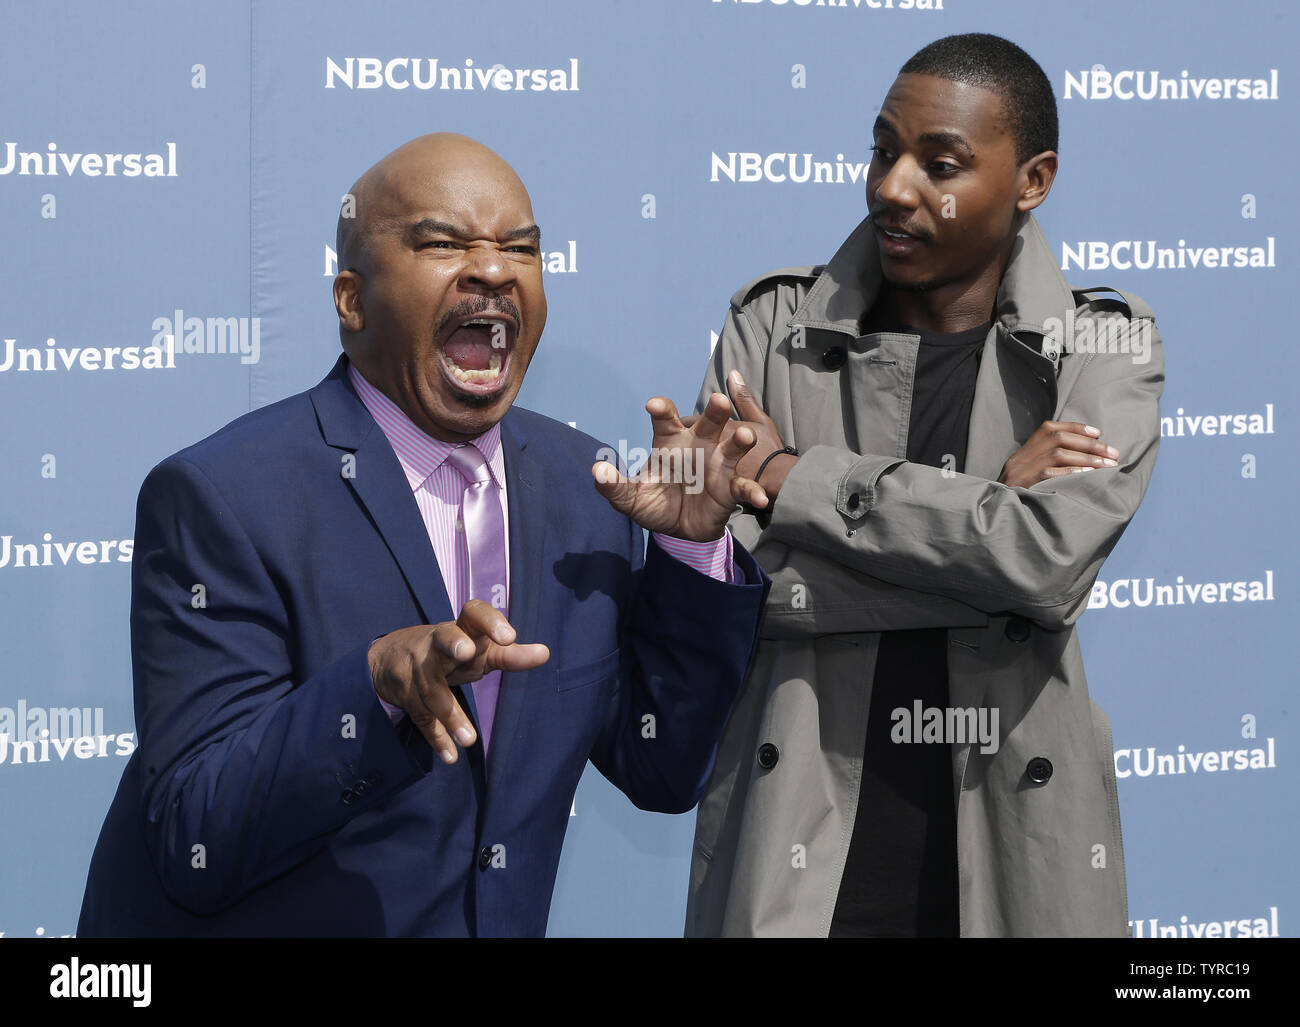 David Alan Grier arrives on the carpet the 2016 NBCUNIVERSAL Upfront at Radio City Music Hall on May 16, 2016 in New York City.    Photo by John Angelillo/UPI - Stock Image